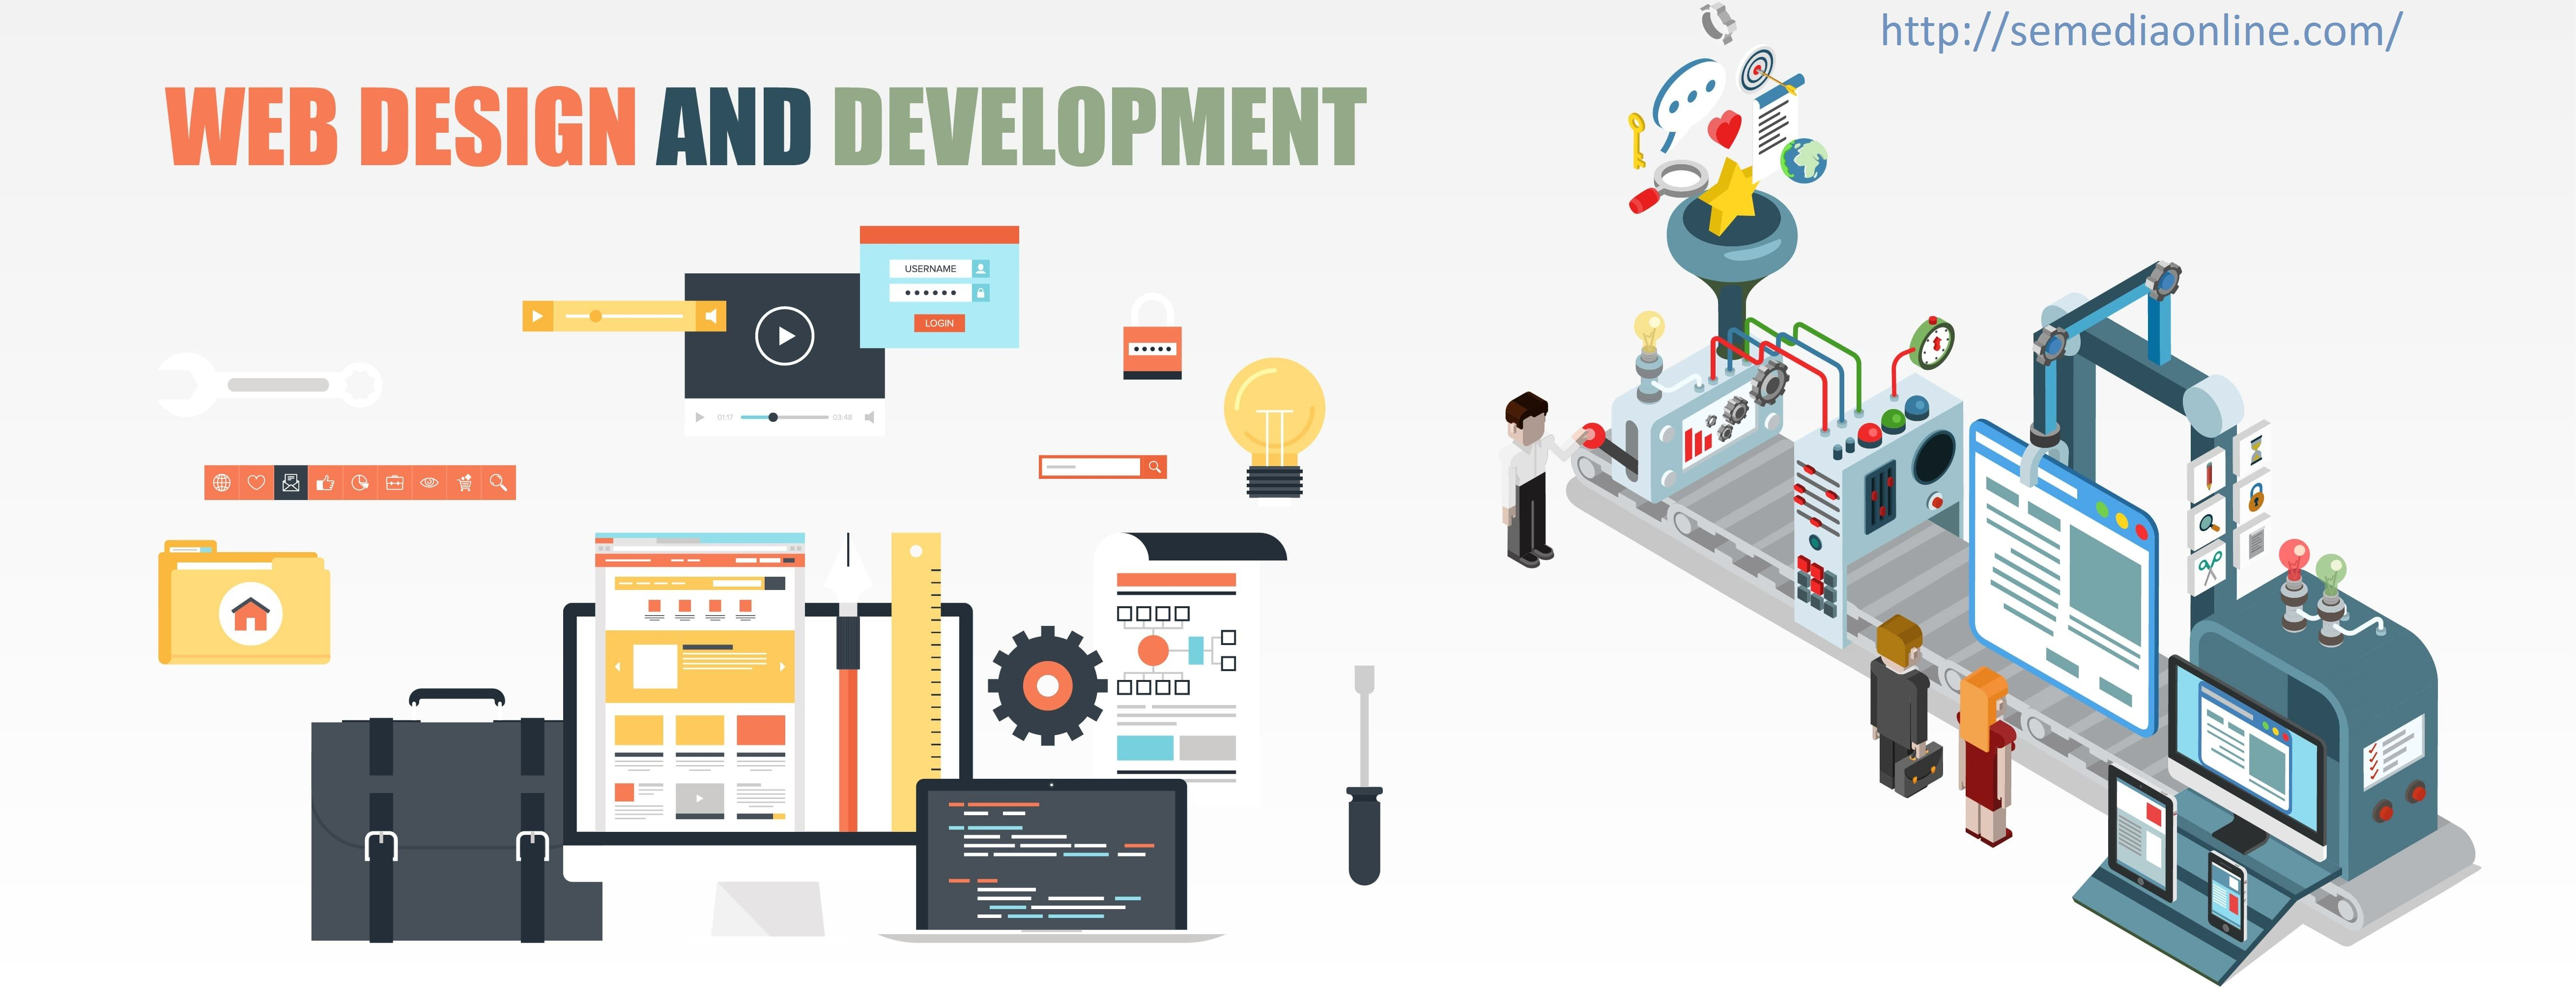 What does a professional Web Designing Company in India achieve? | Web  development design, Website design company, Web design company